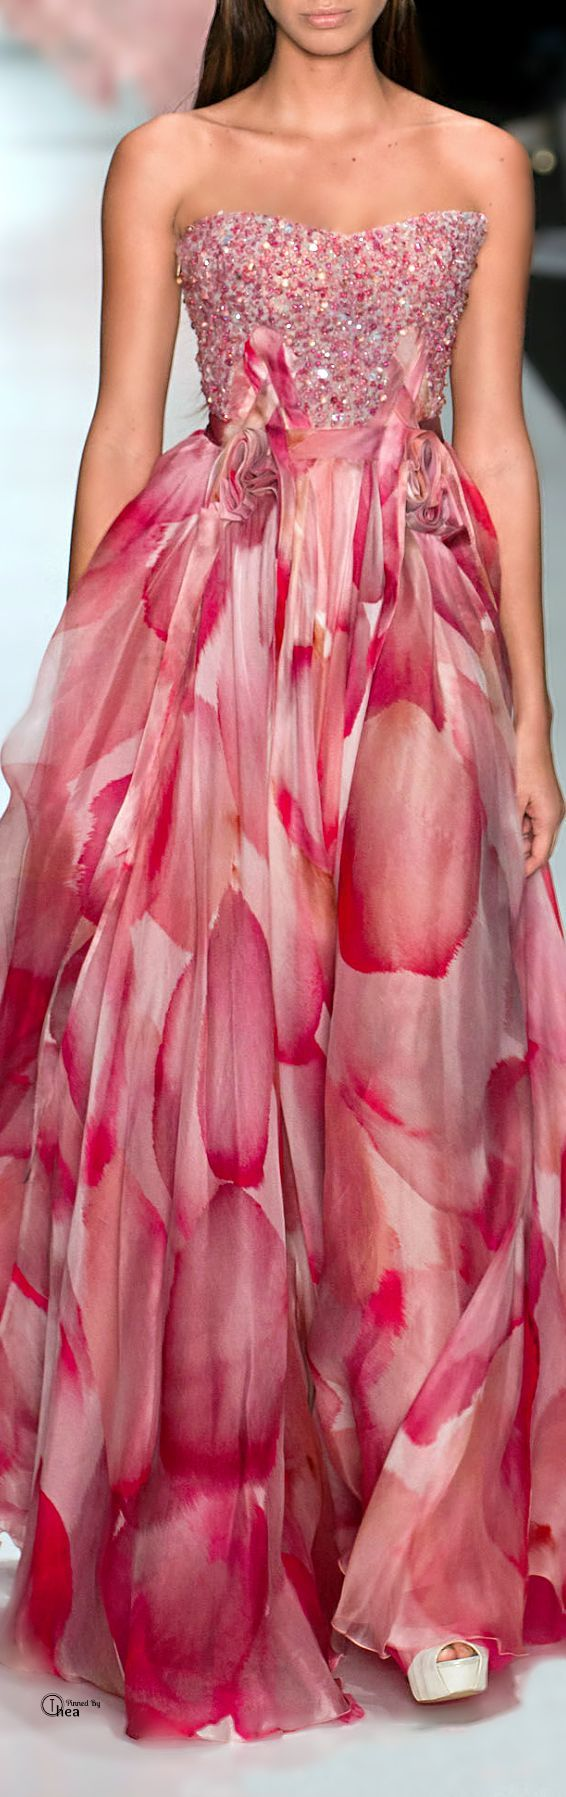 I'm swooning over this amazing pink gown. http://sulia.com/channel/fashion/f/7cf55f31-fbda-4a72-8ad9-1634bf2bd971/?source=pin&action=share&btn=small&form_factor=desktop&pinner=118487941